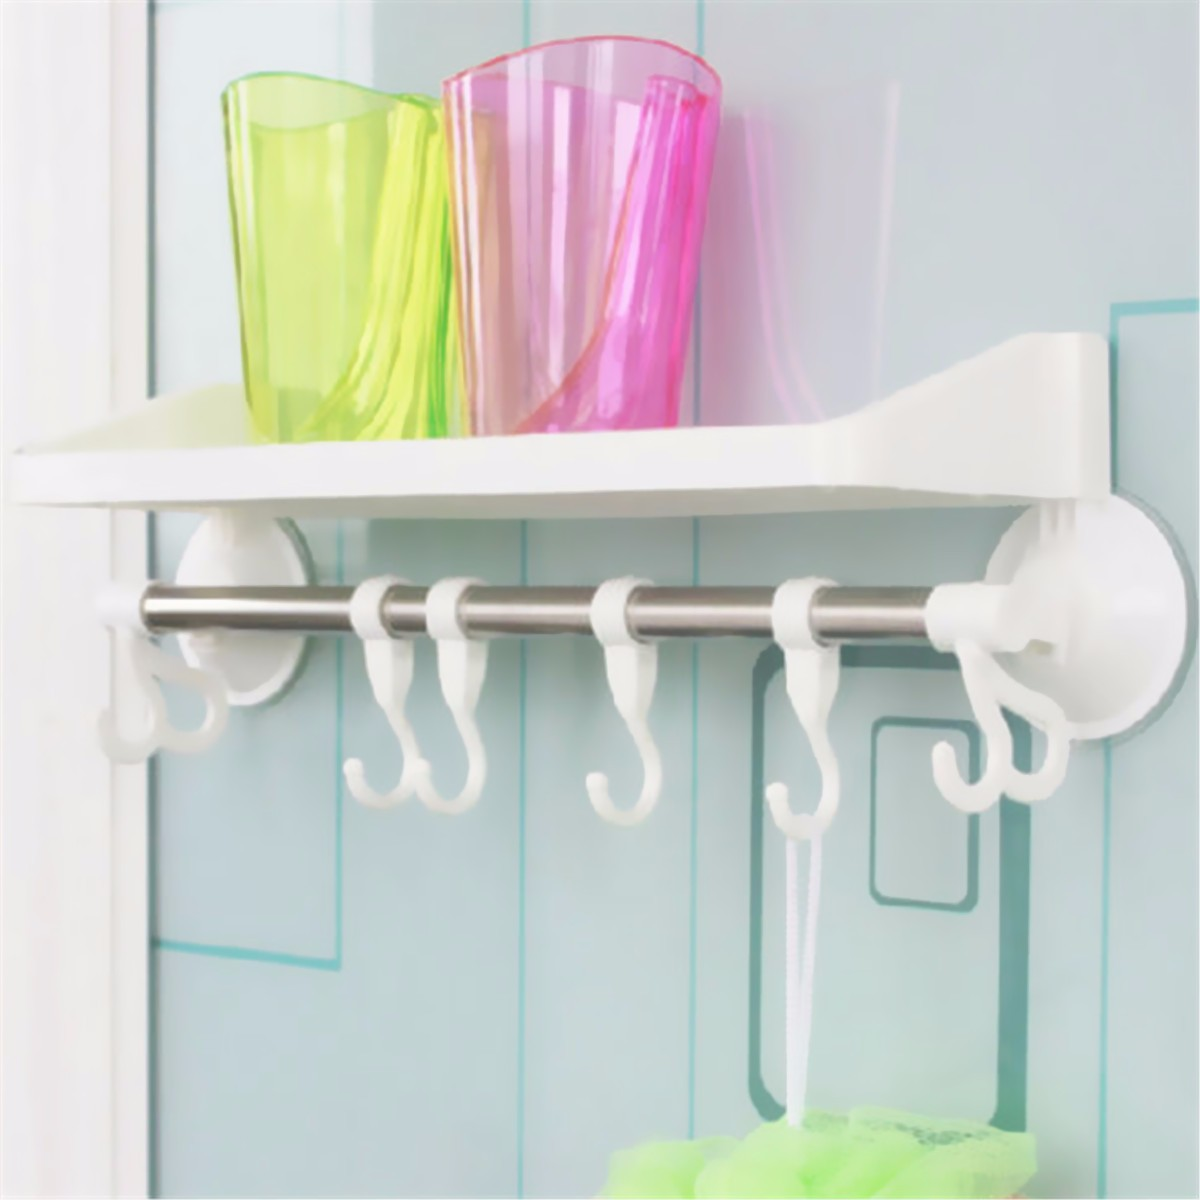 Home Bathroom Kitchen Plastic Shower (end 5/4/2019 10:15 AM)